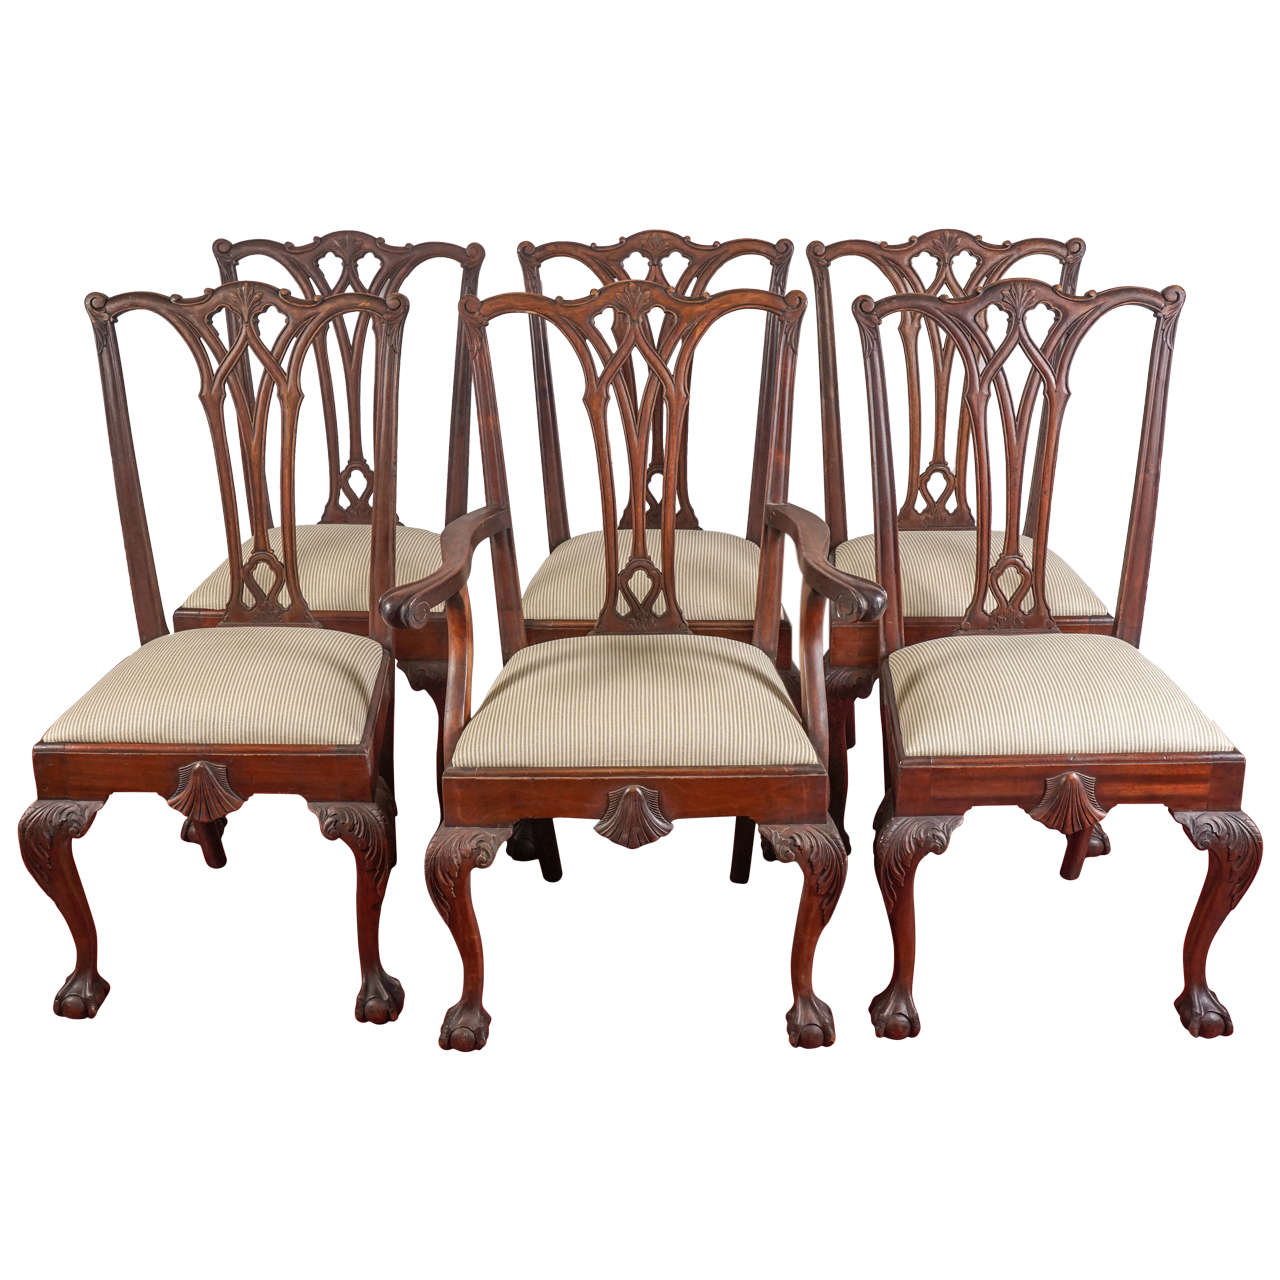 Chippendale Dining Room Chairs: Six Chippendale Revival Dining Chairs At 1stdibs